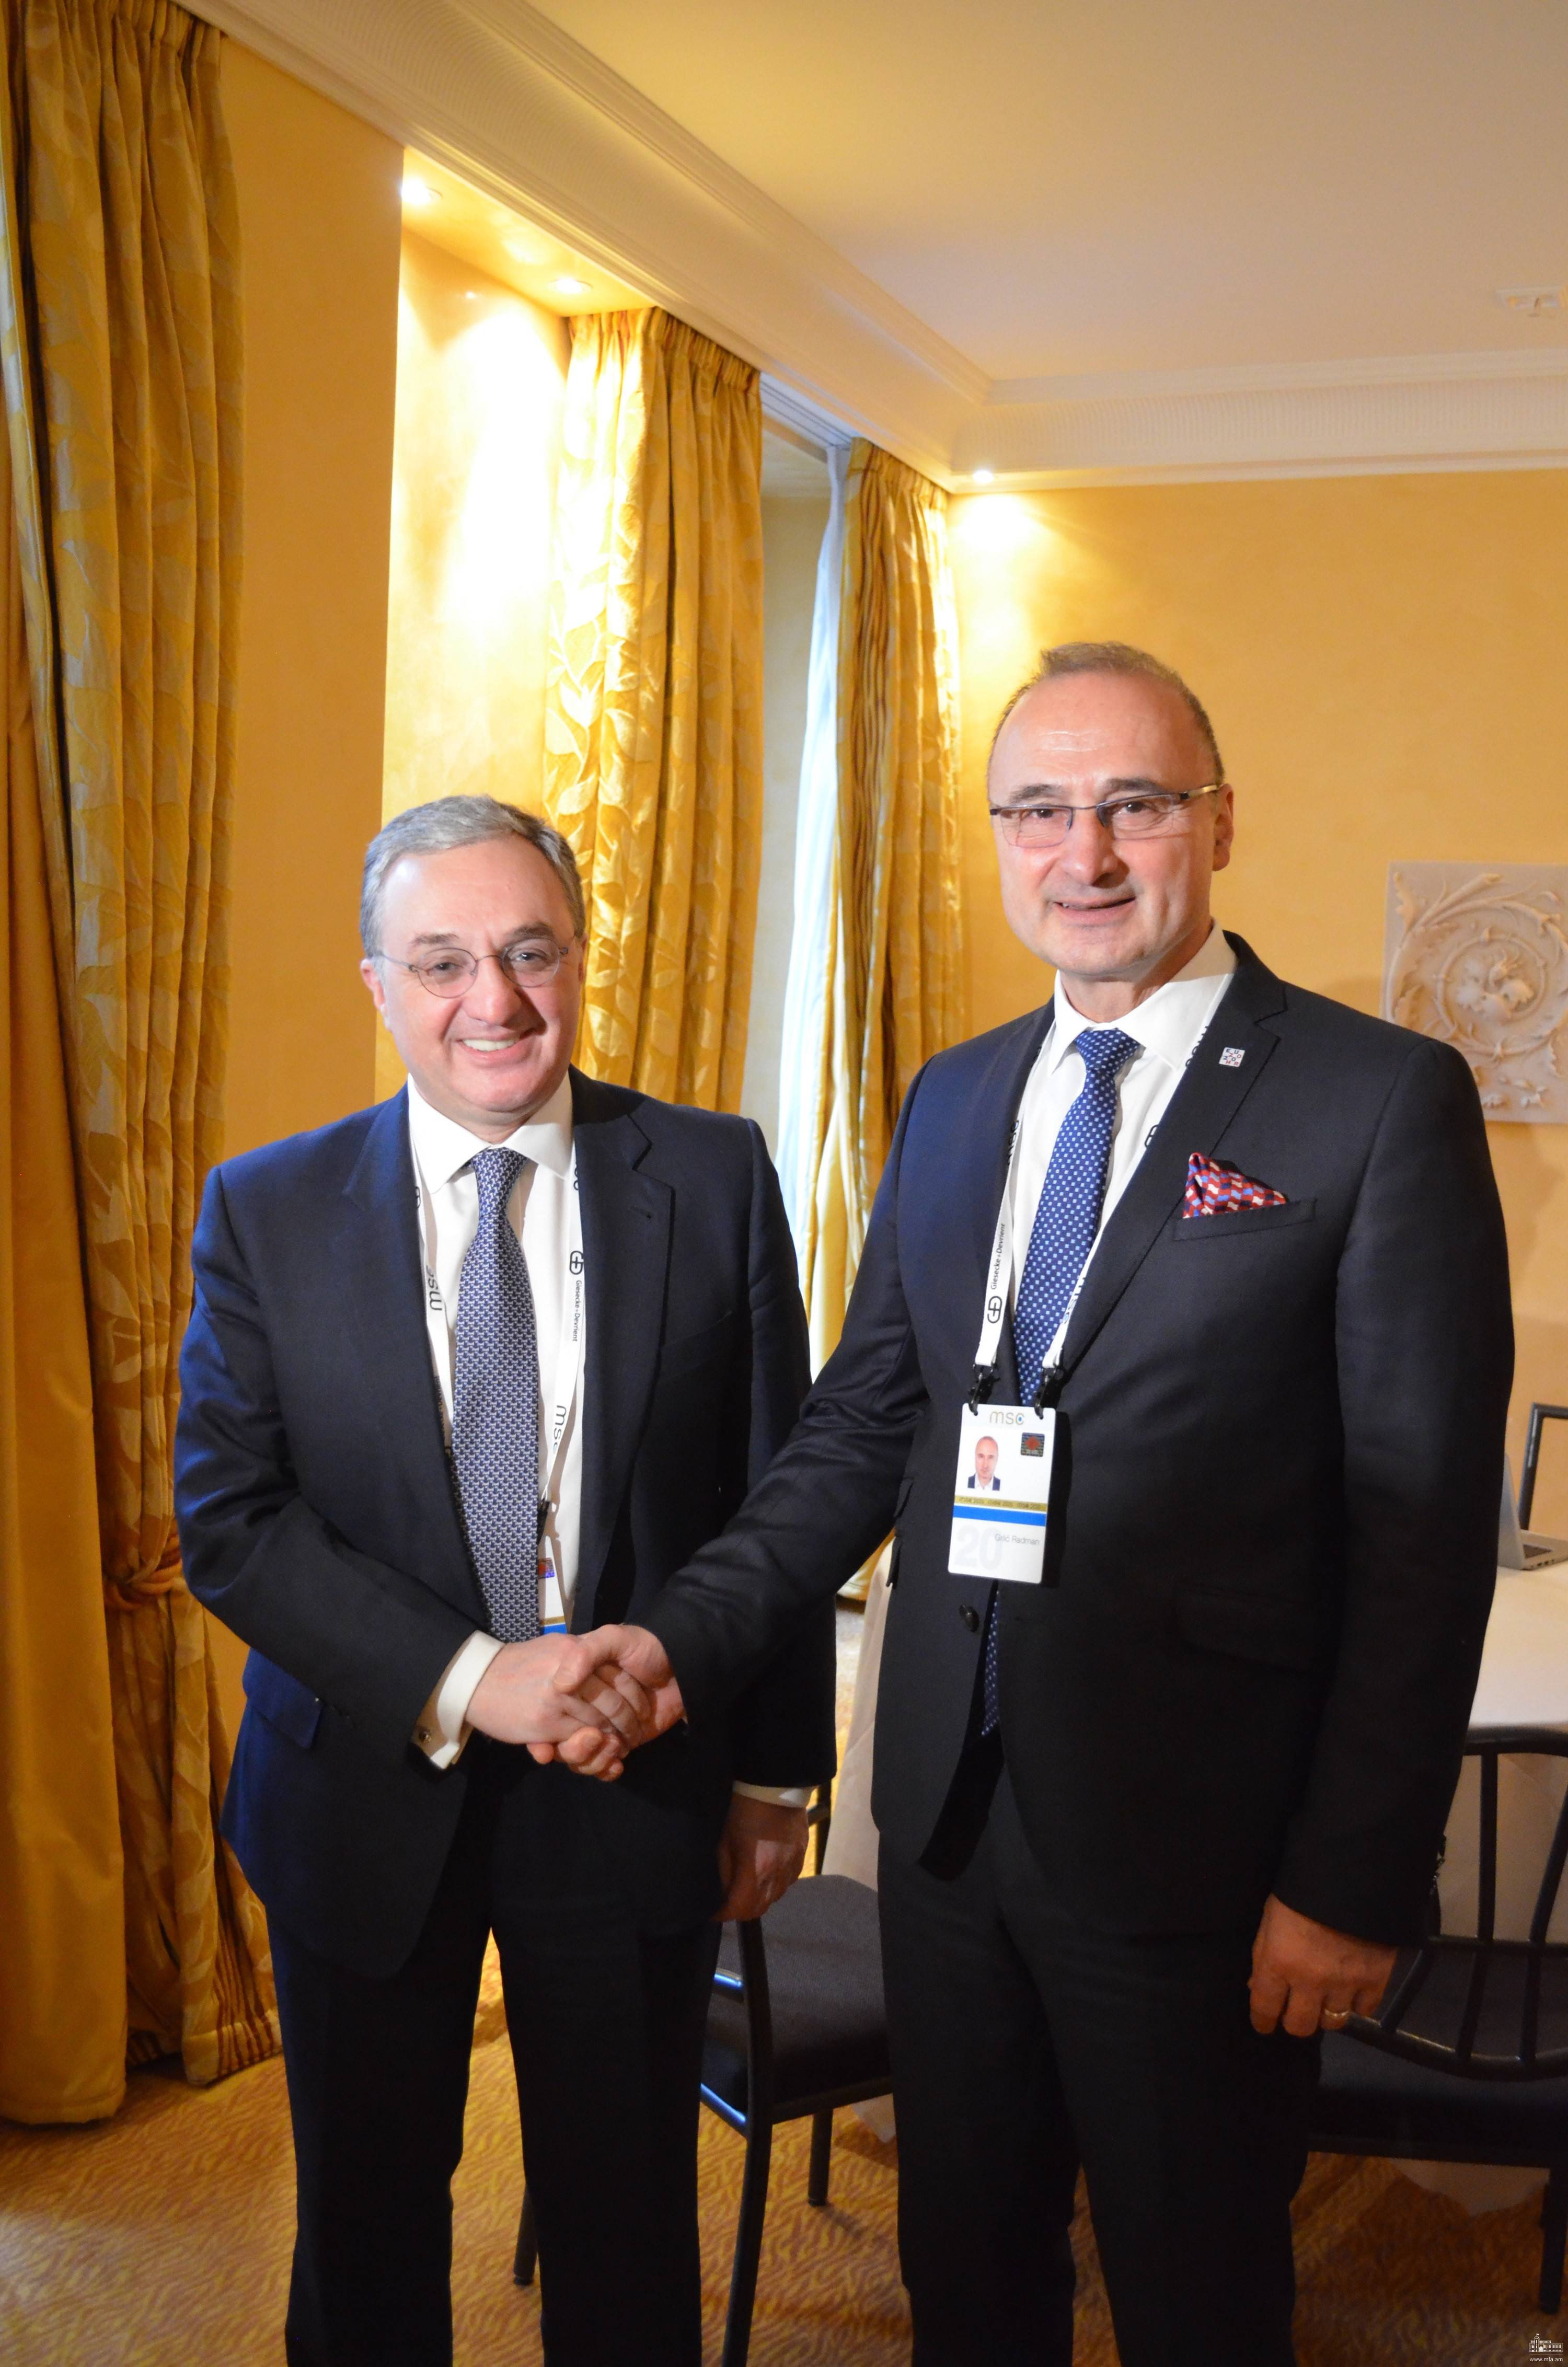 Meeting of the Foreign Minister of Armenia with Gordan Grlić Radman, Minister of Foreign and European Affairs of Croatia